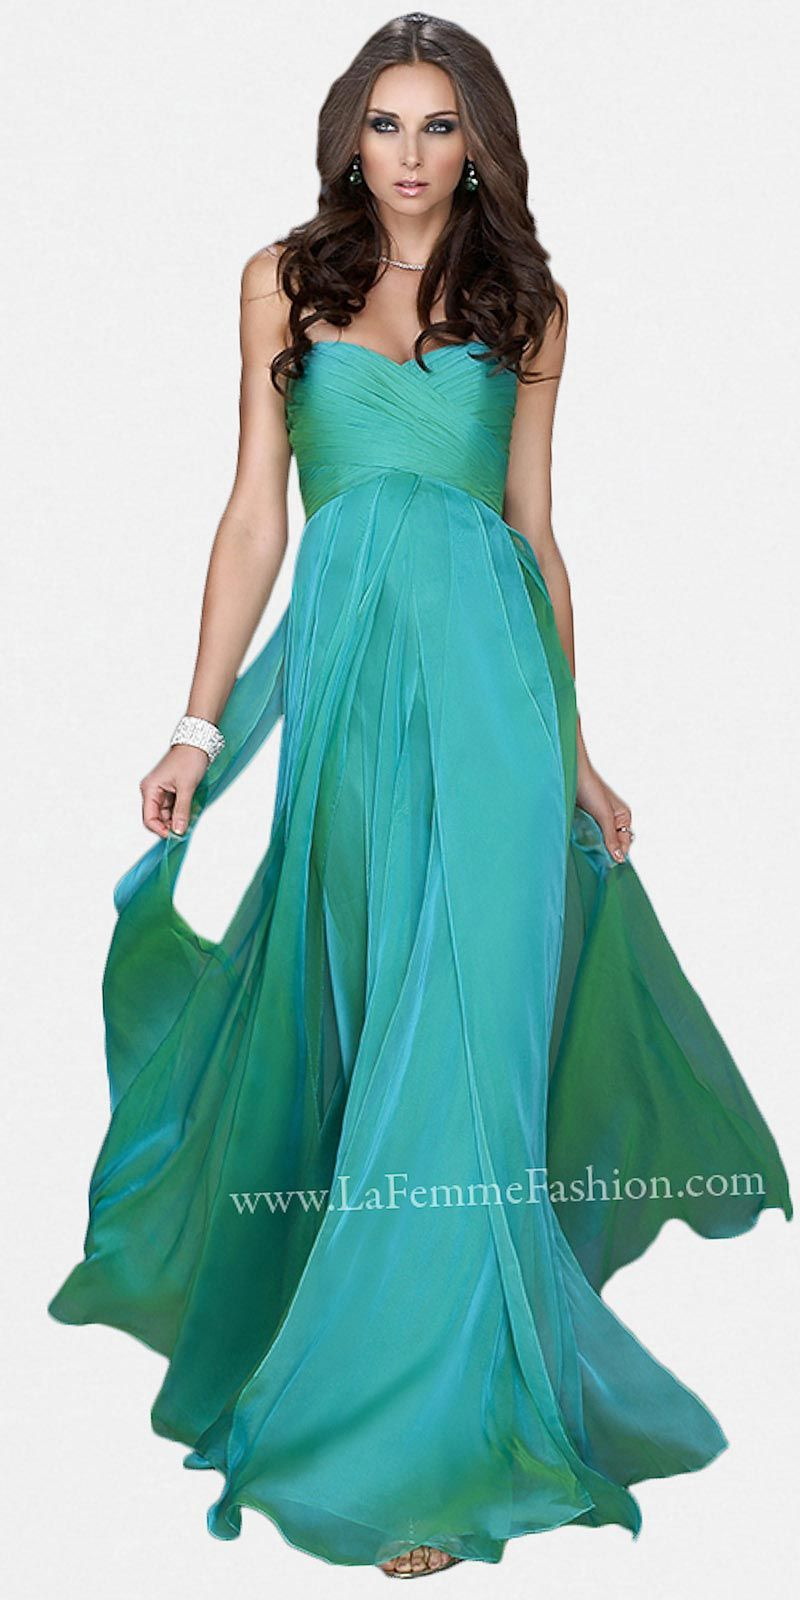 Jungle Green Classic Strapless Prom Dresses by La Femme at eDressMe ...